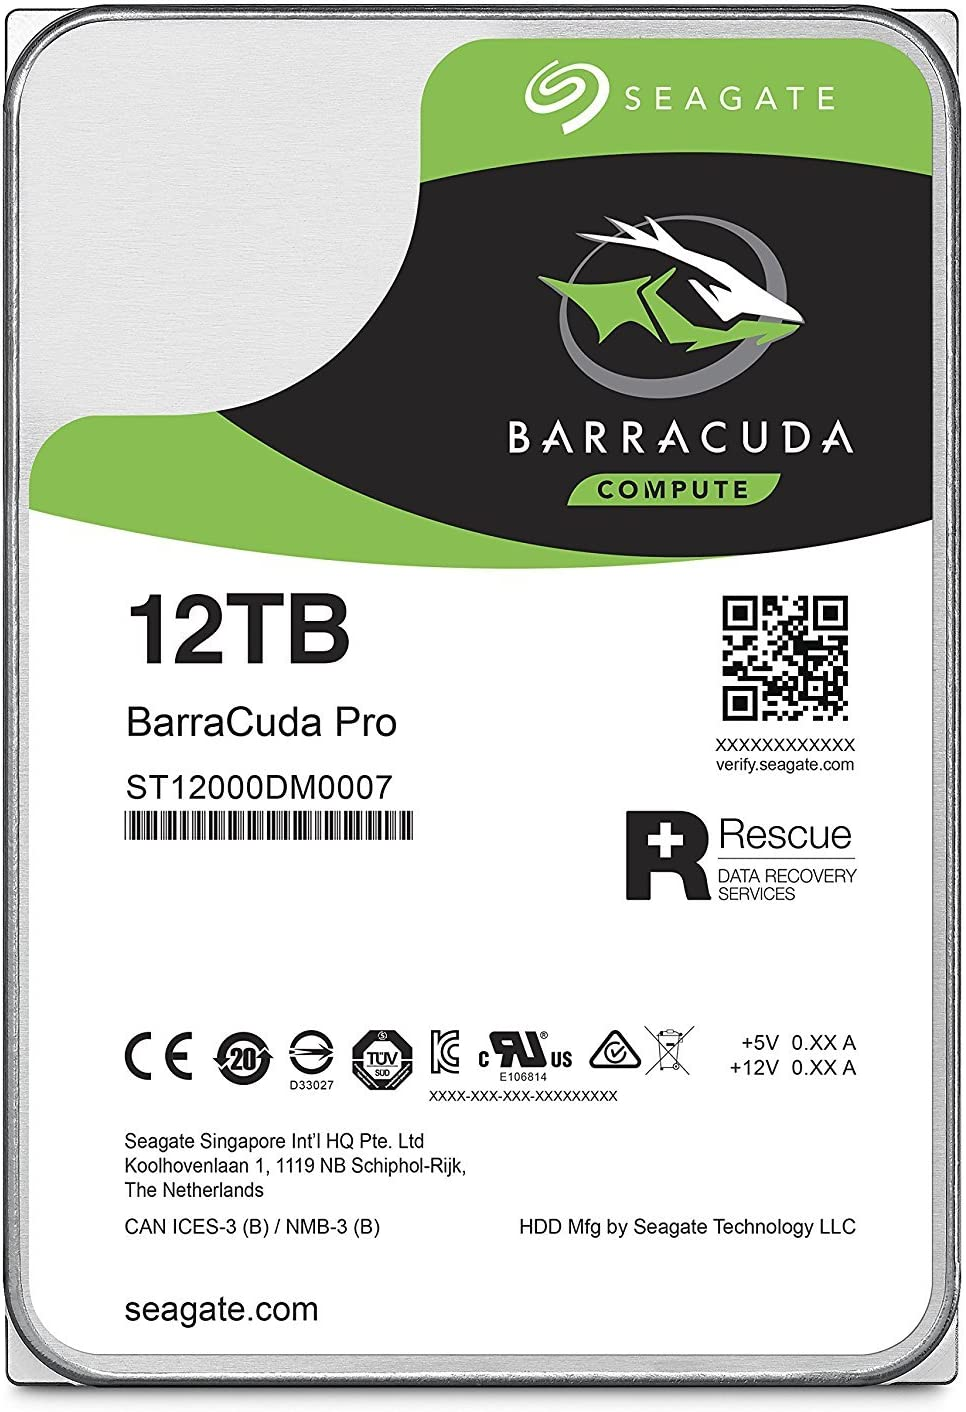 Seagate BarraCuda Pro 12TB Internal Hard Drive Performance HDD – 3.5 Inch SATA 6 Gb/s 7200 RPM 256MB Cache for Computer Desktop PC Laptop – Frustration Free Packaging (ST12000DM0007) (Renewed)